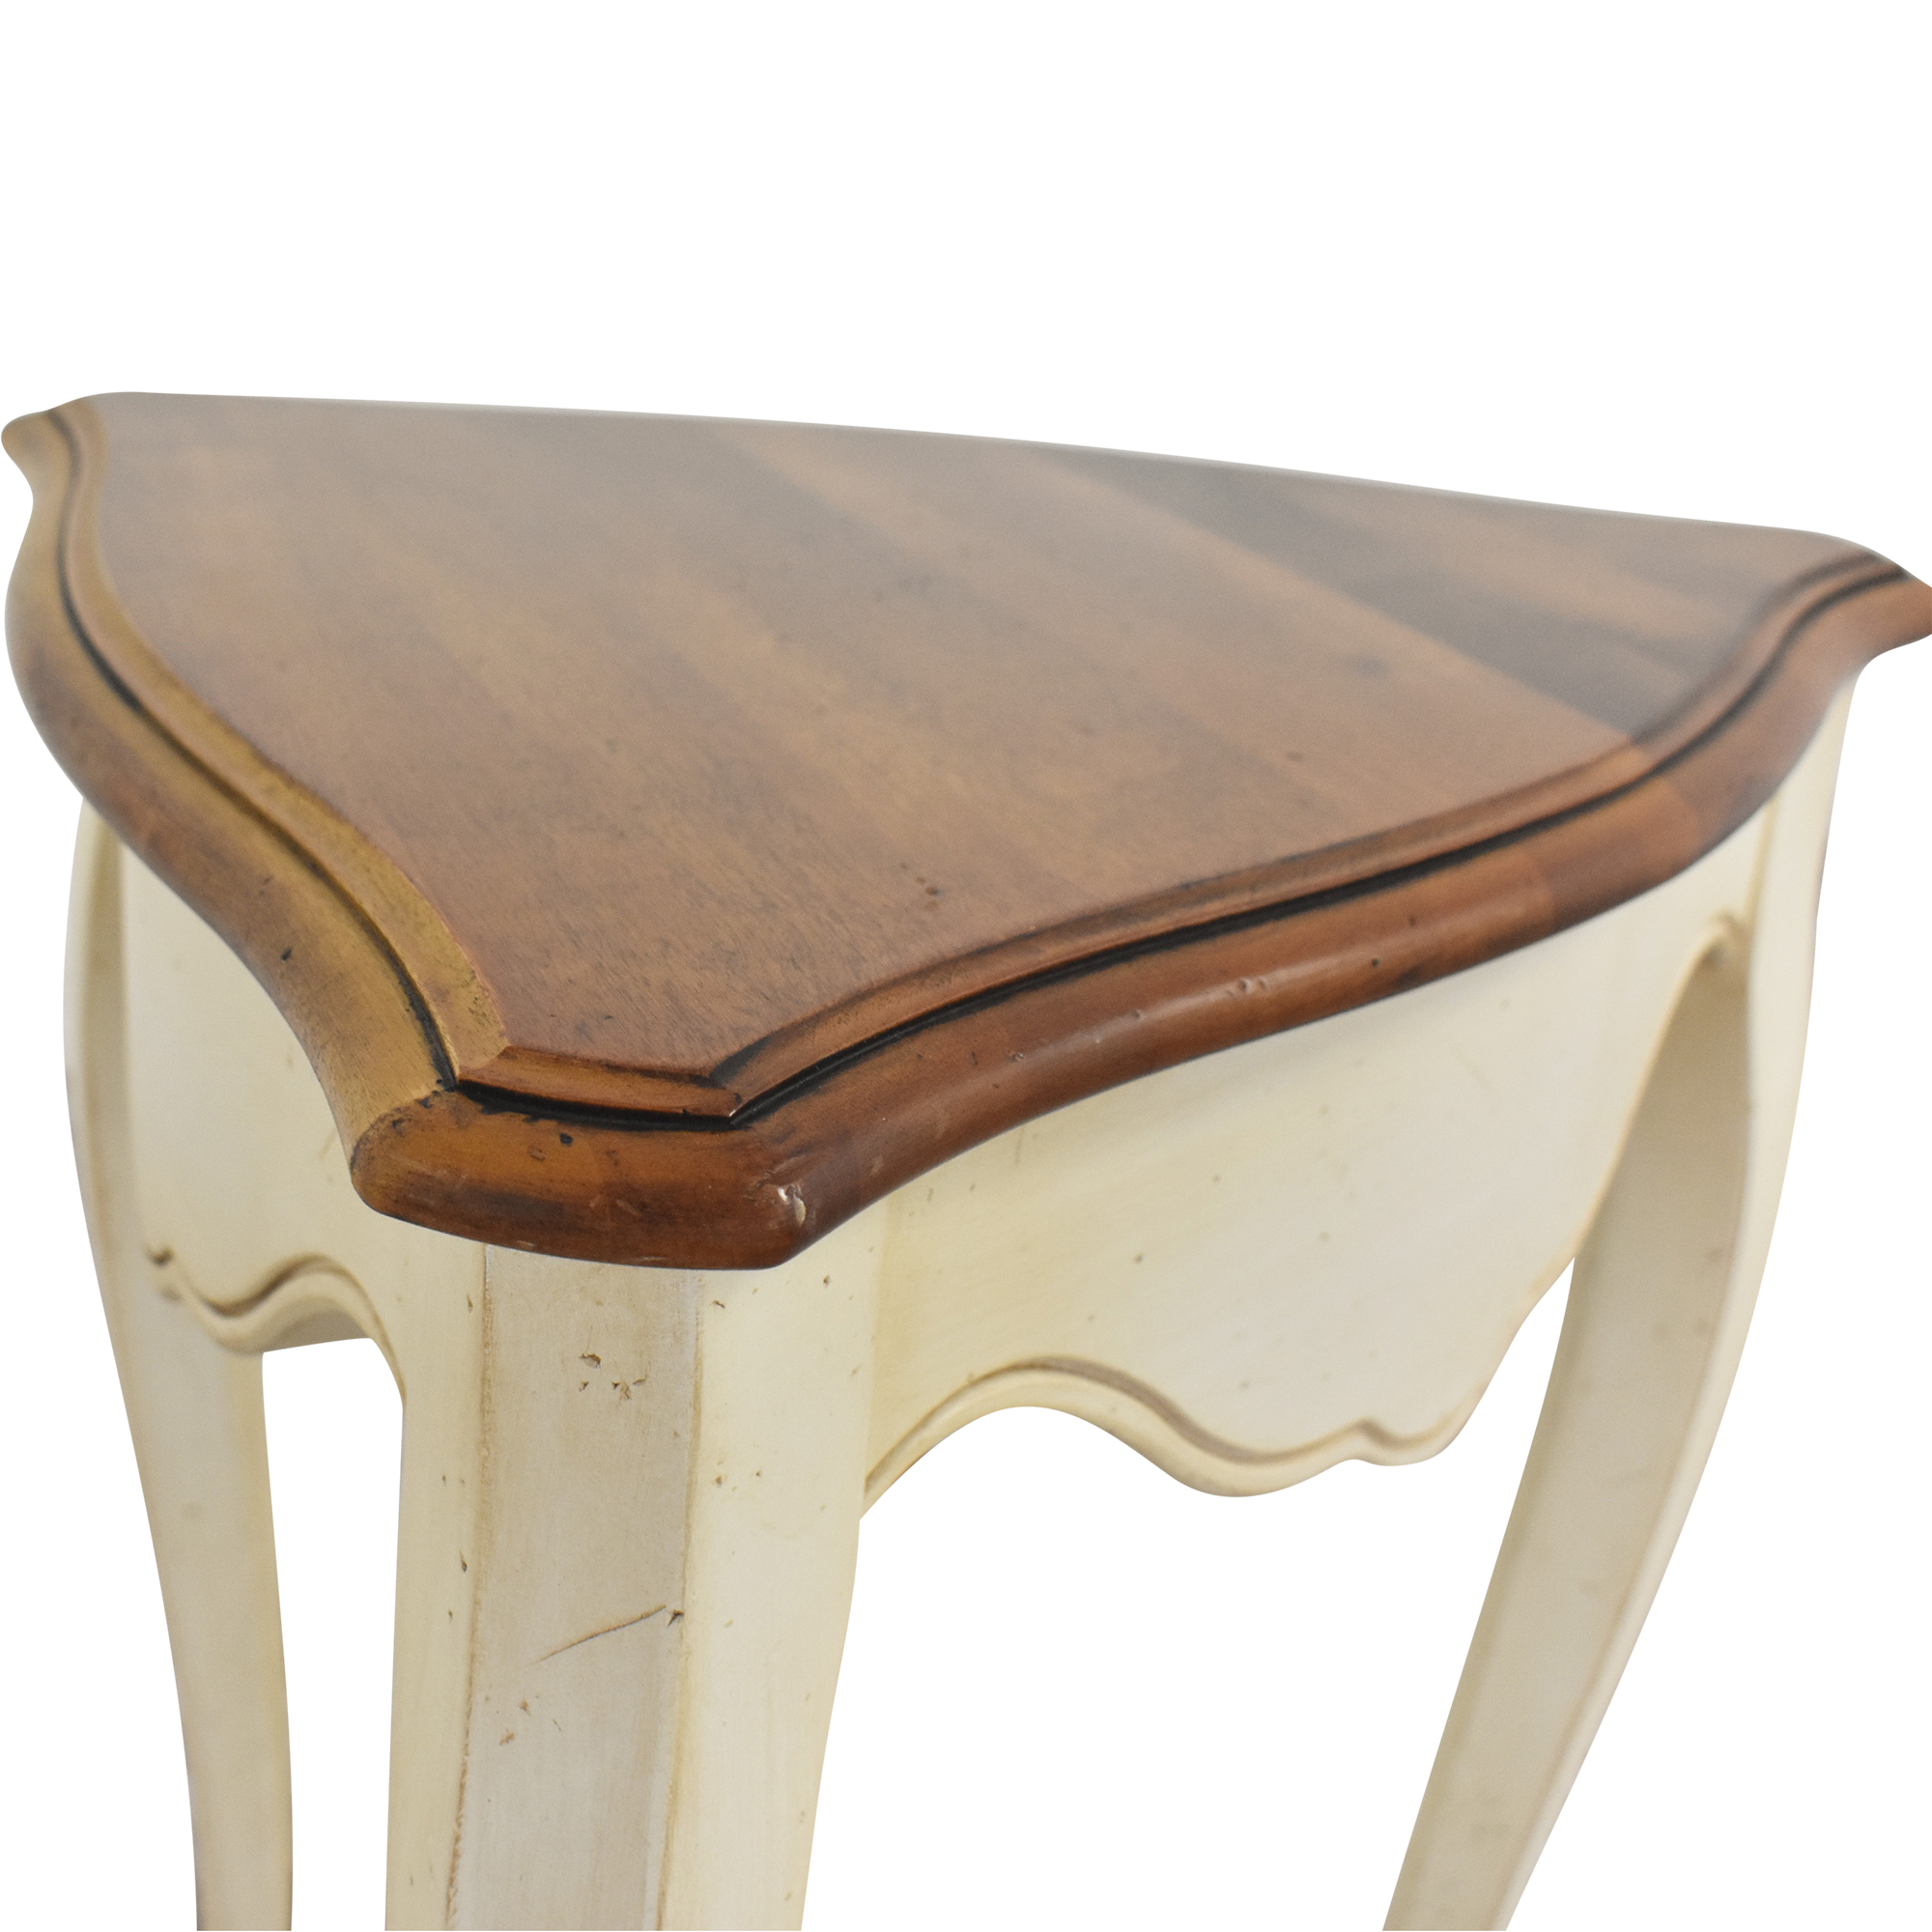 Ethan Allen Ethan Allen Occasional Table price